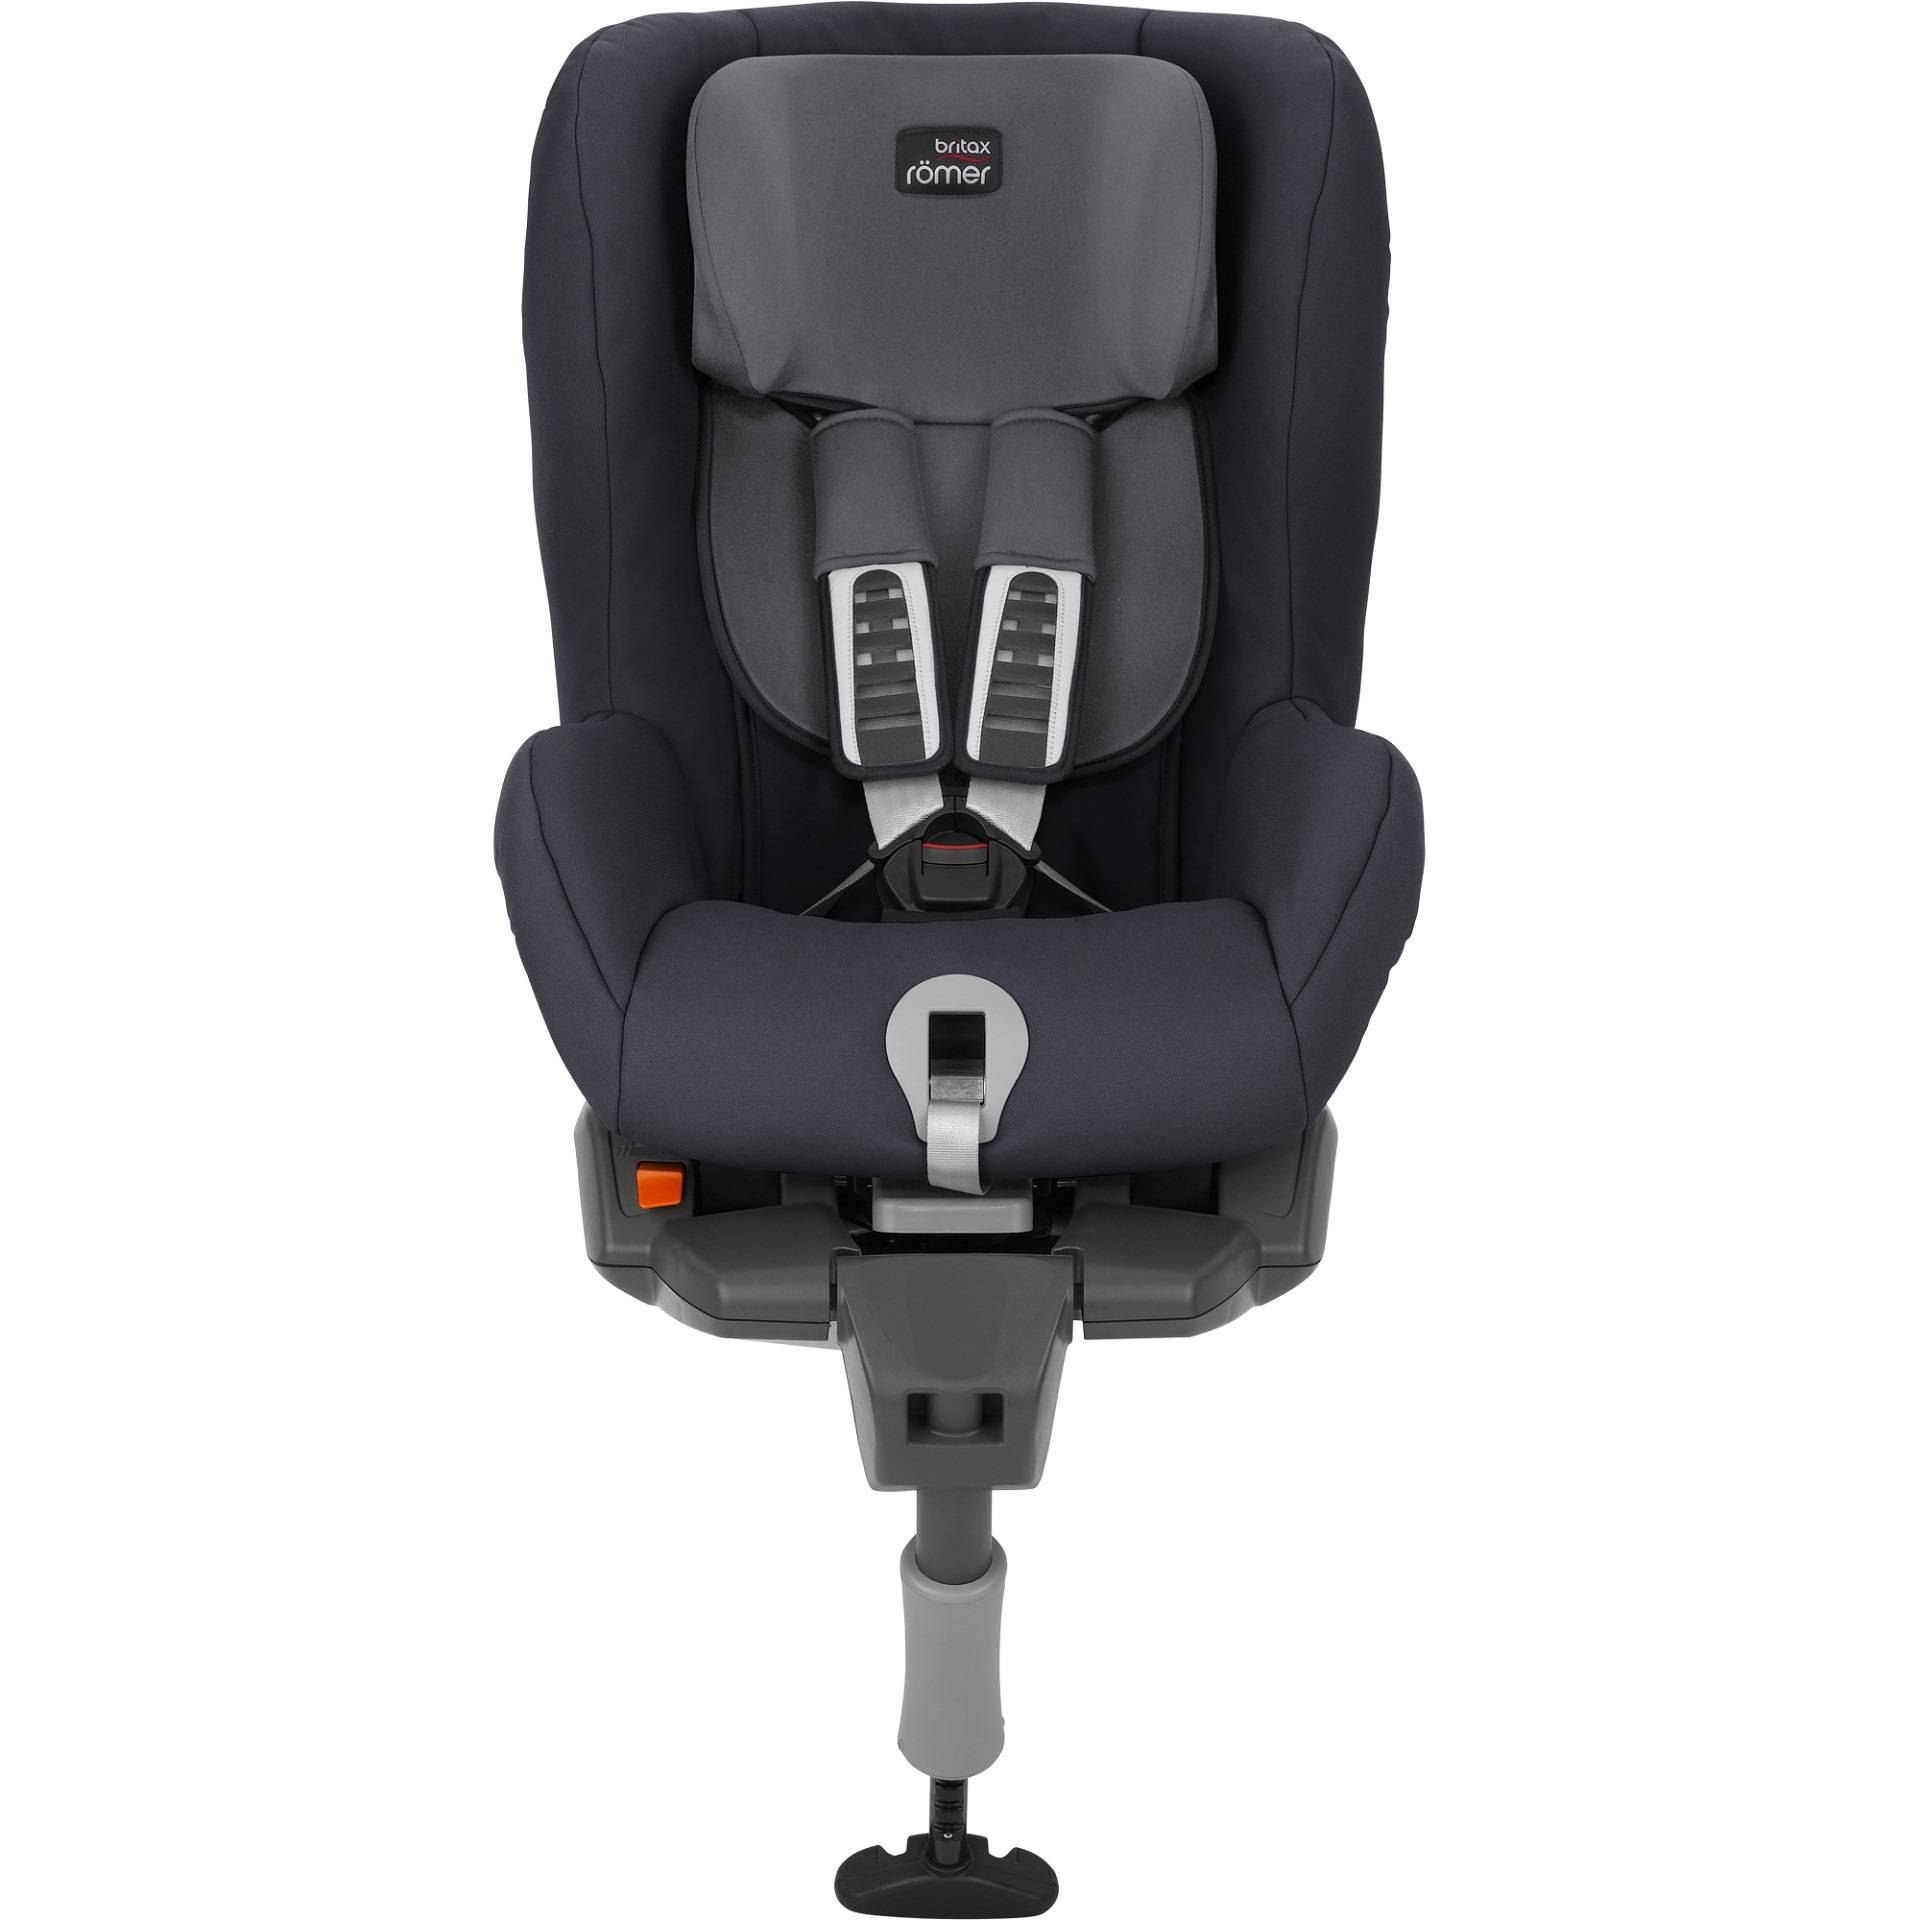 britax r mer kindersitz safefix plus online kaufen bei kidsroom kindersitze kindersitze mit. Black Bedroom Furniture Sets. Home Design Ideas